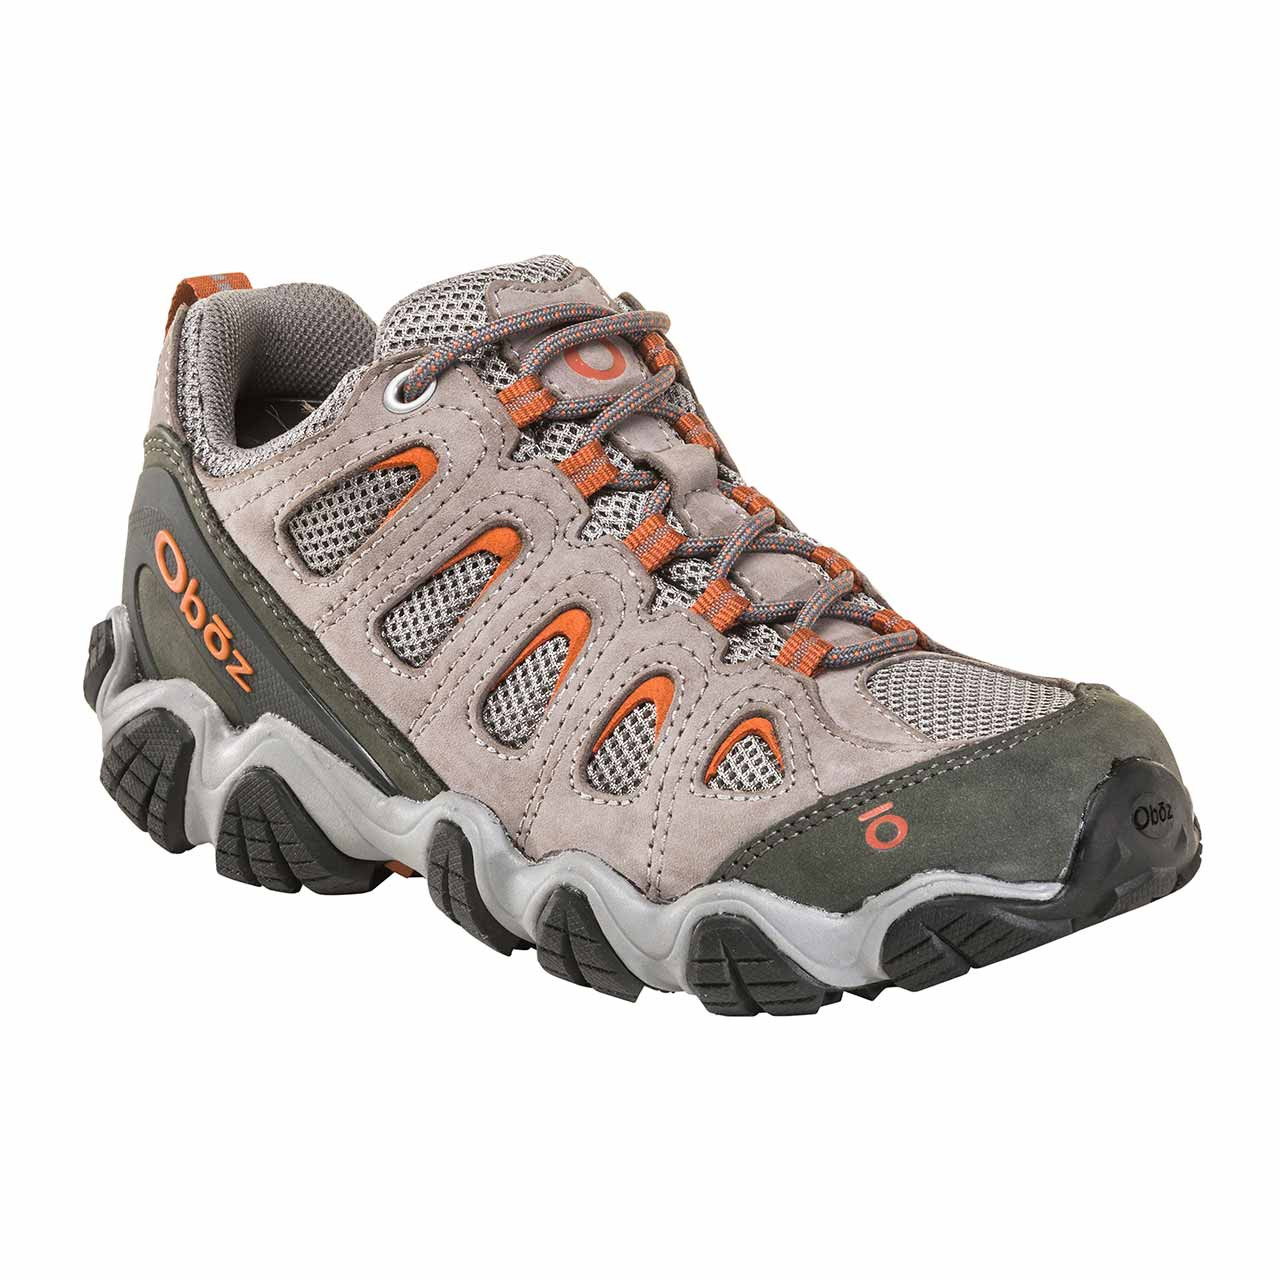 425bf4a2bb7 Oboz Women's Sawtooth II Low Hiking Shoe